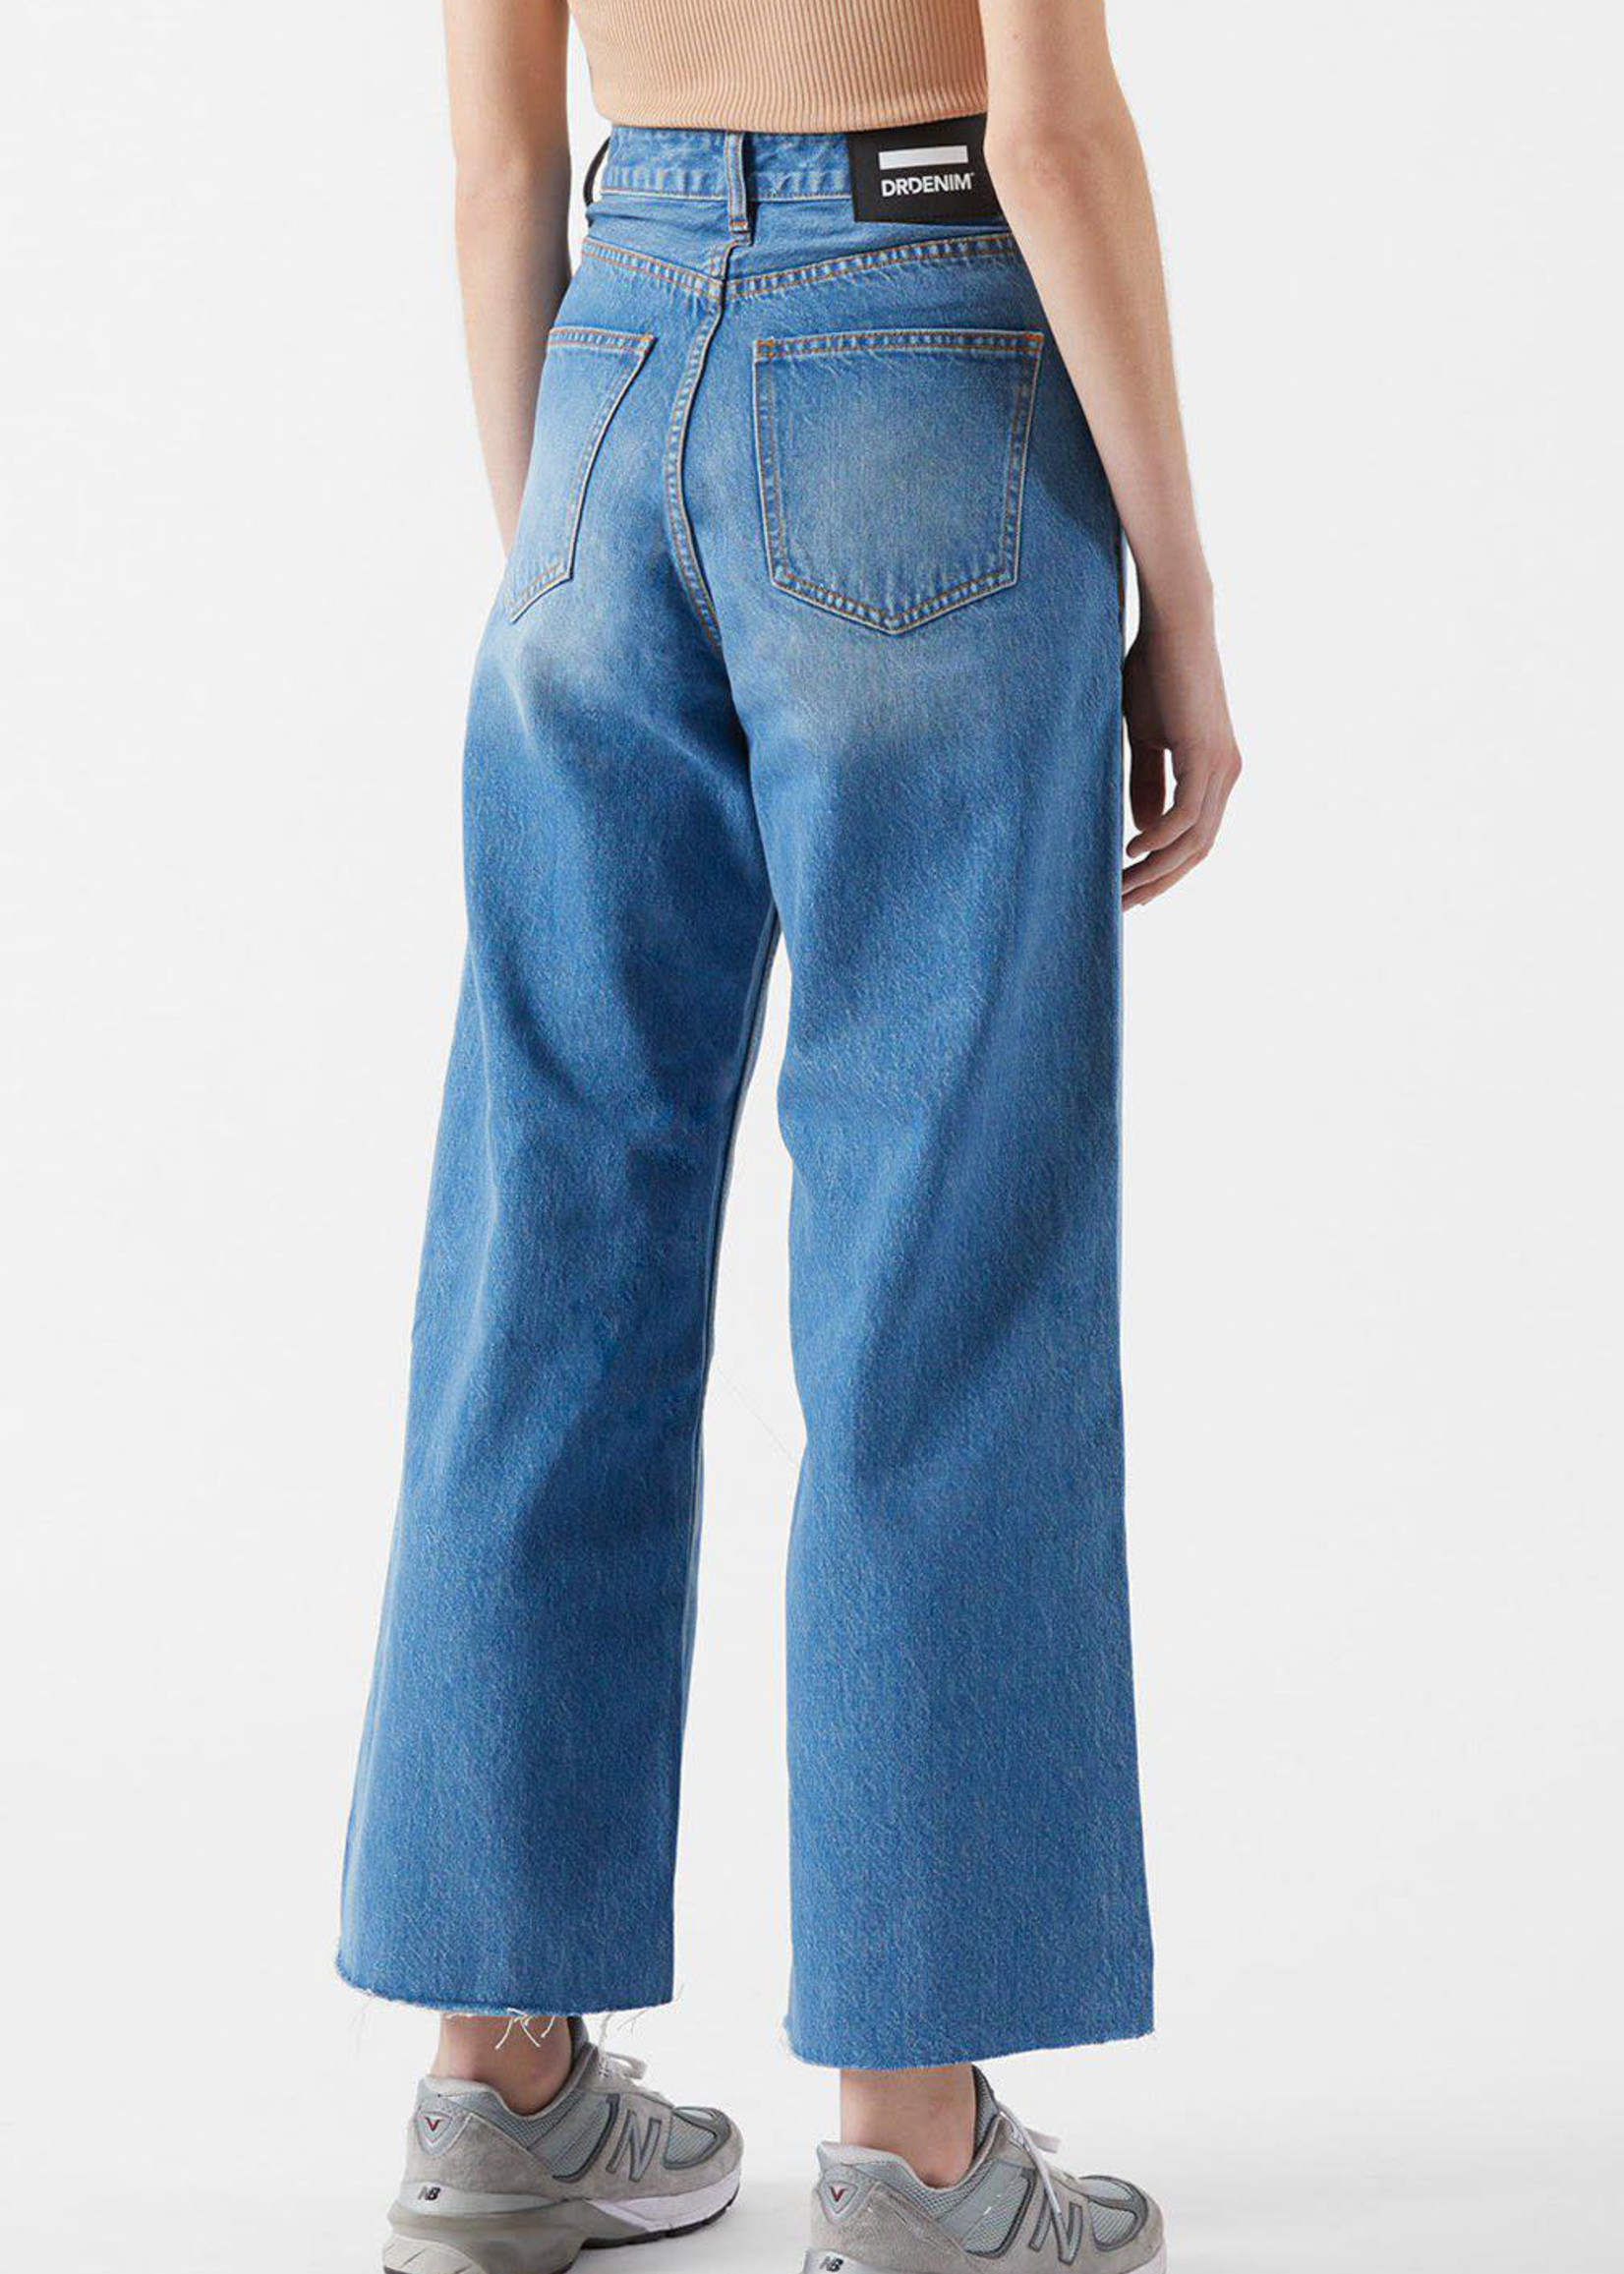 DR DENIM Cropped Aiko Jeans